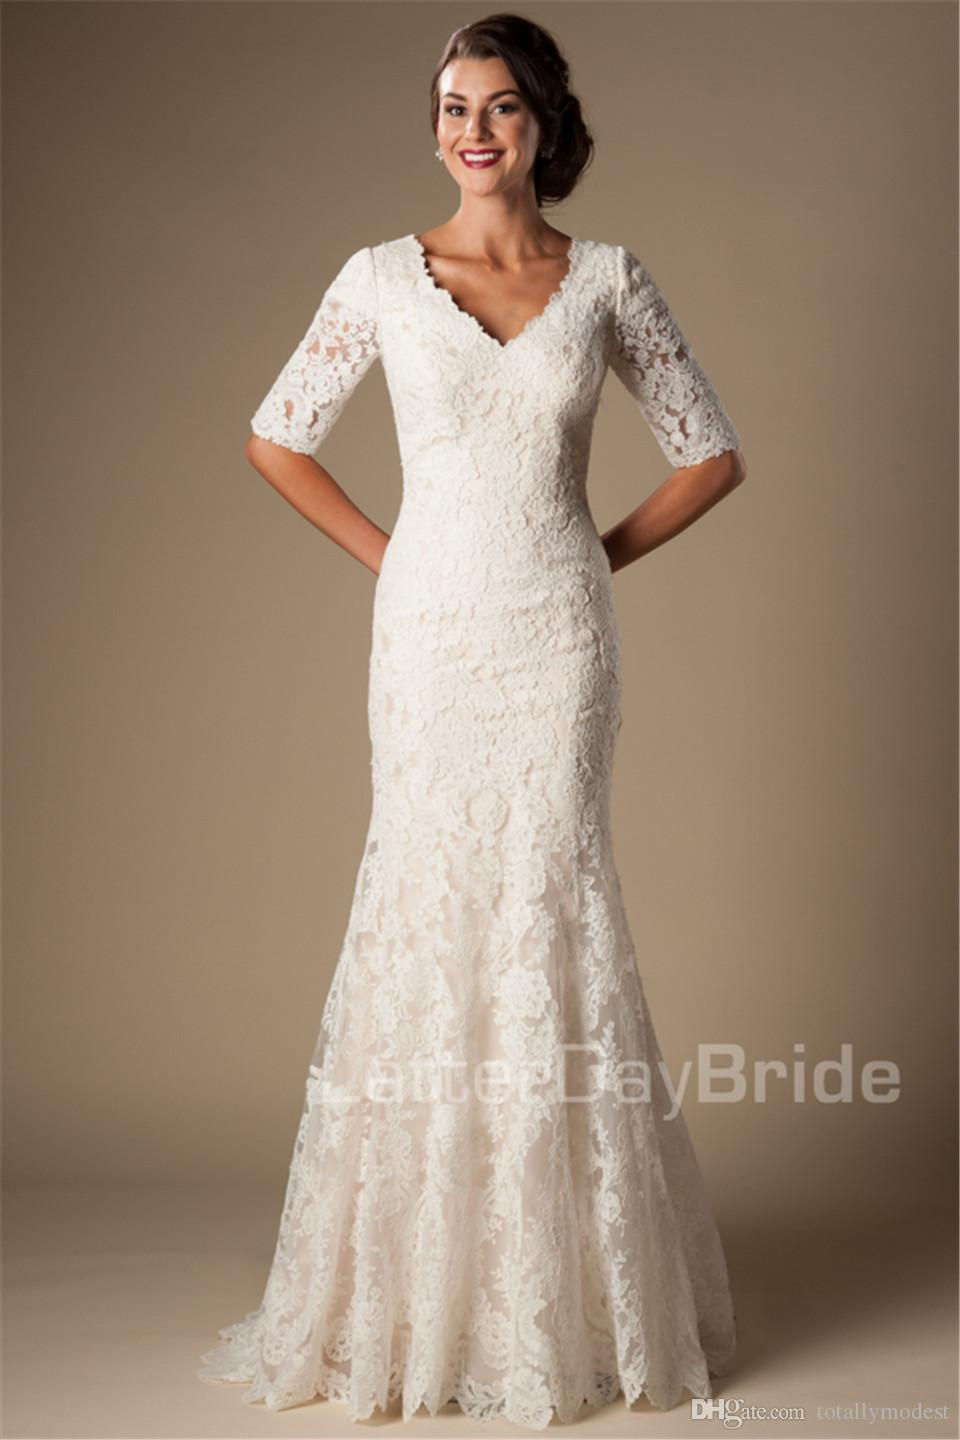 Ivory Vintage Lace Mermaid Modest Wedding Dresses With Half Sleeves V Neck Elbow Sleeves Length Temple Wedding Gowns Vestido De Noiva